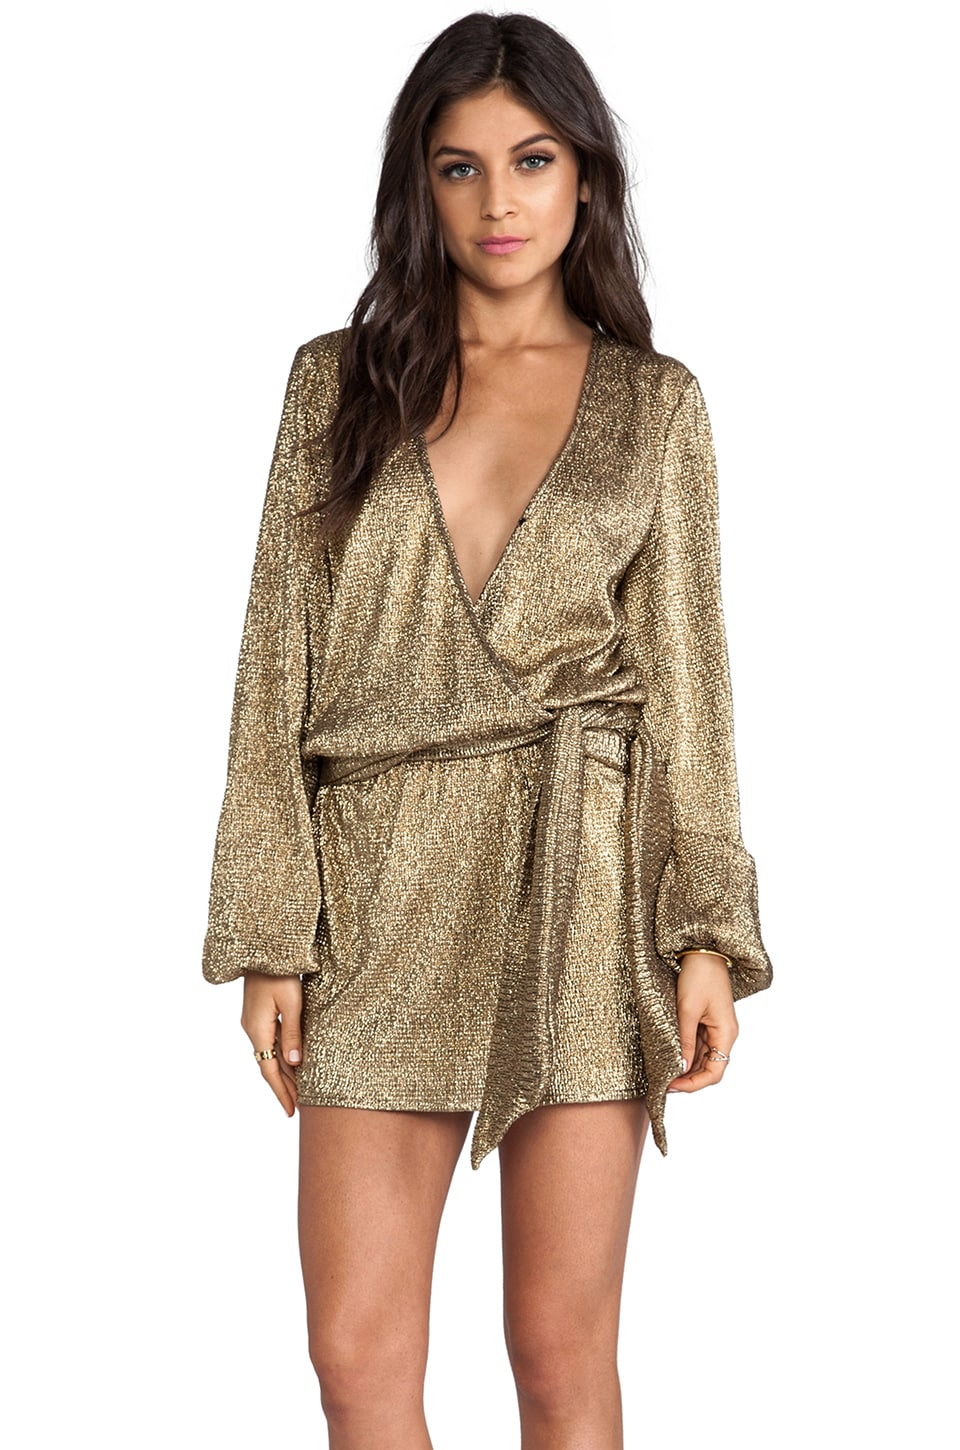 Alexis Siena Cross-Over Dress in Gold Foil